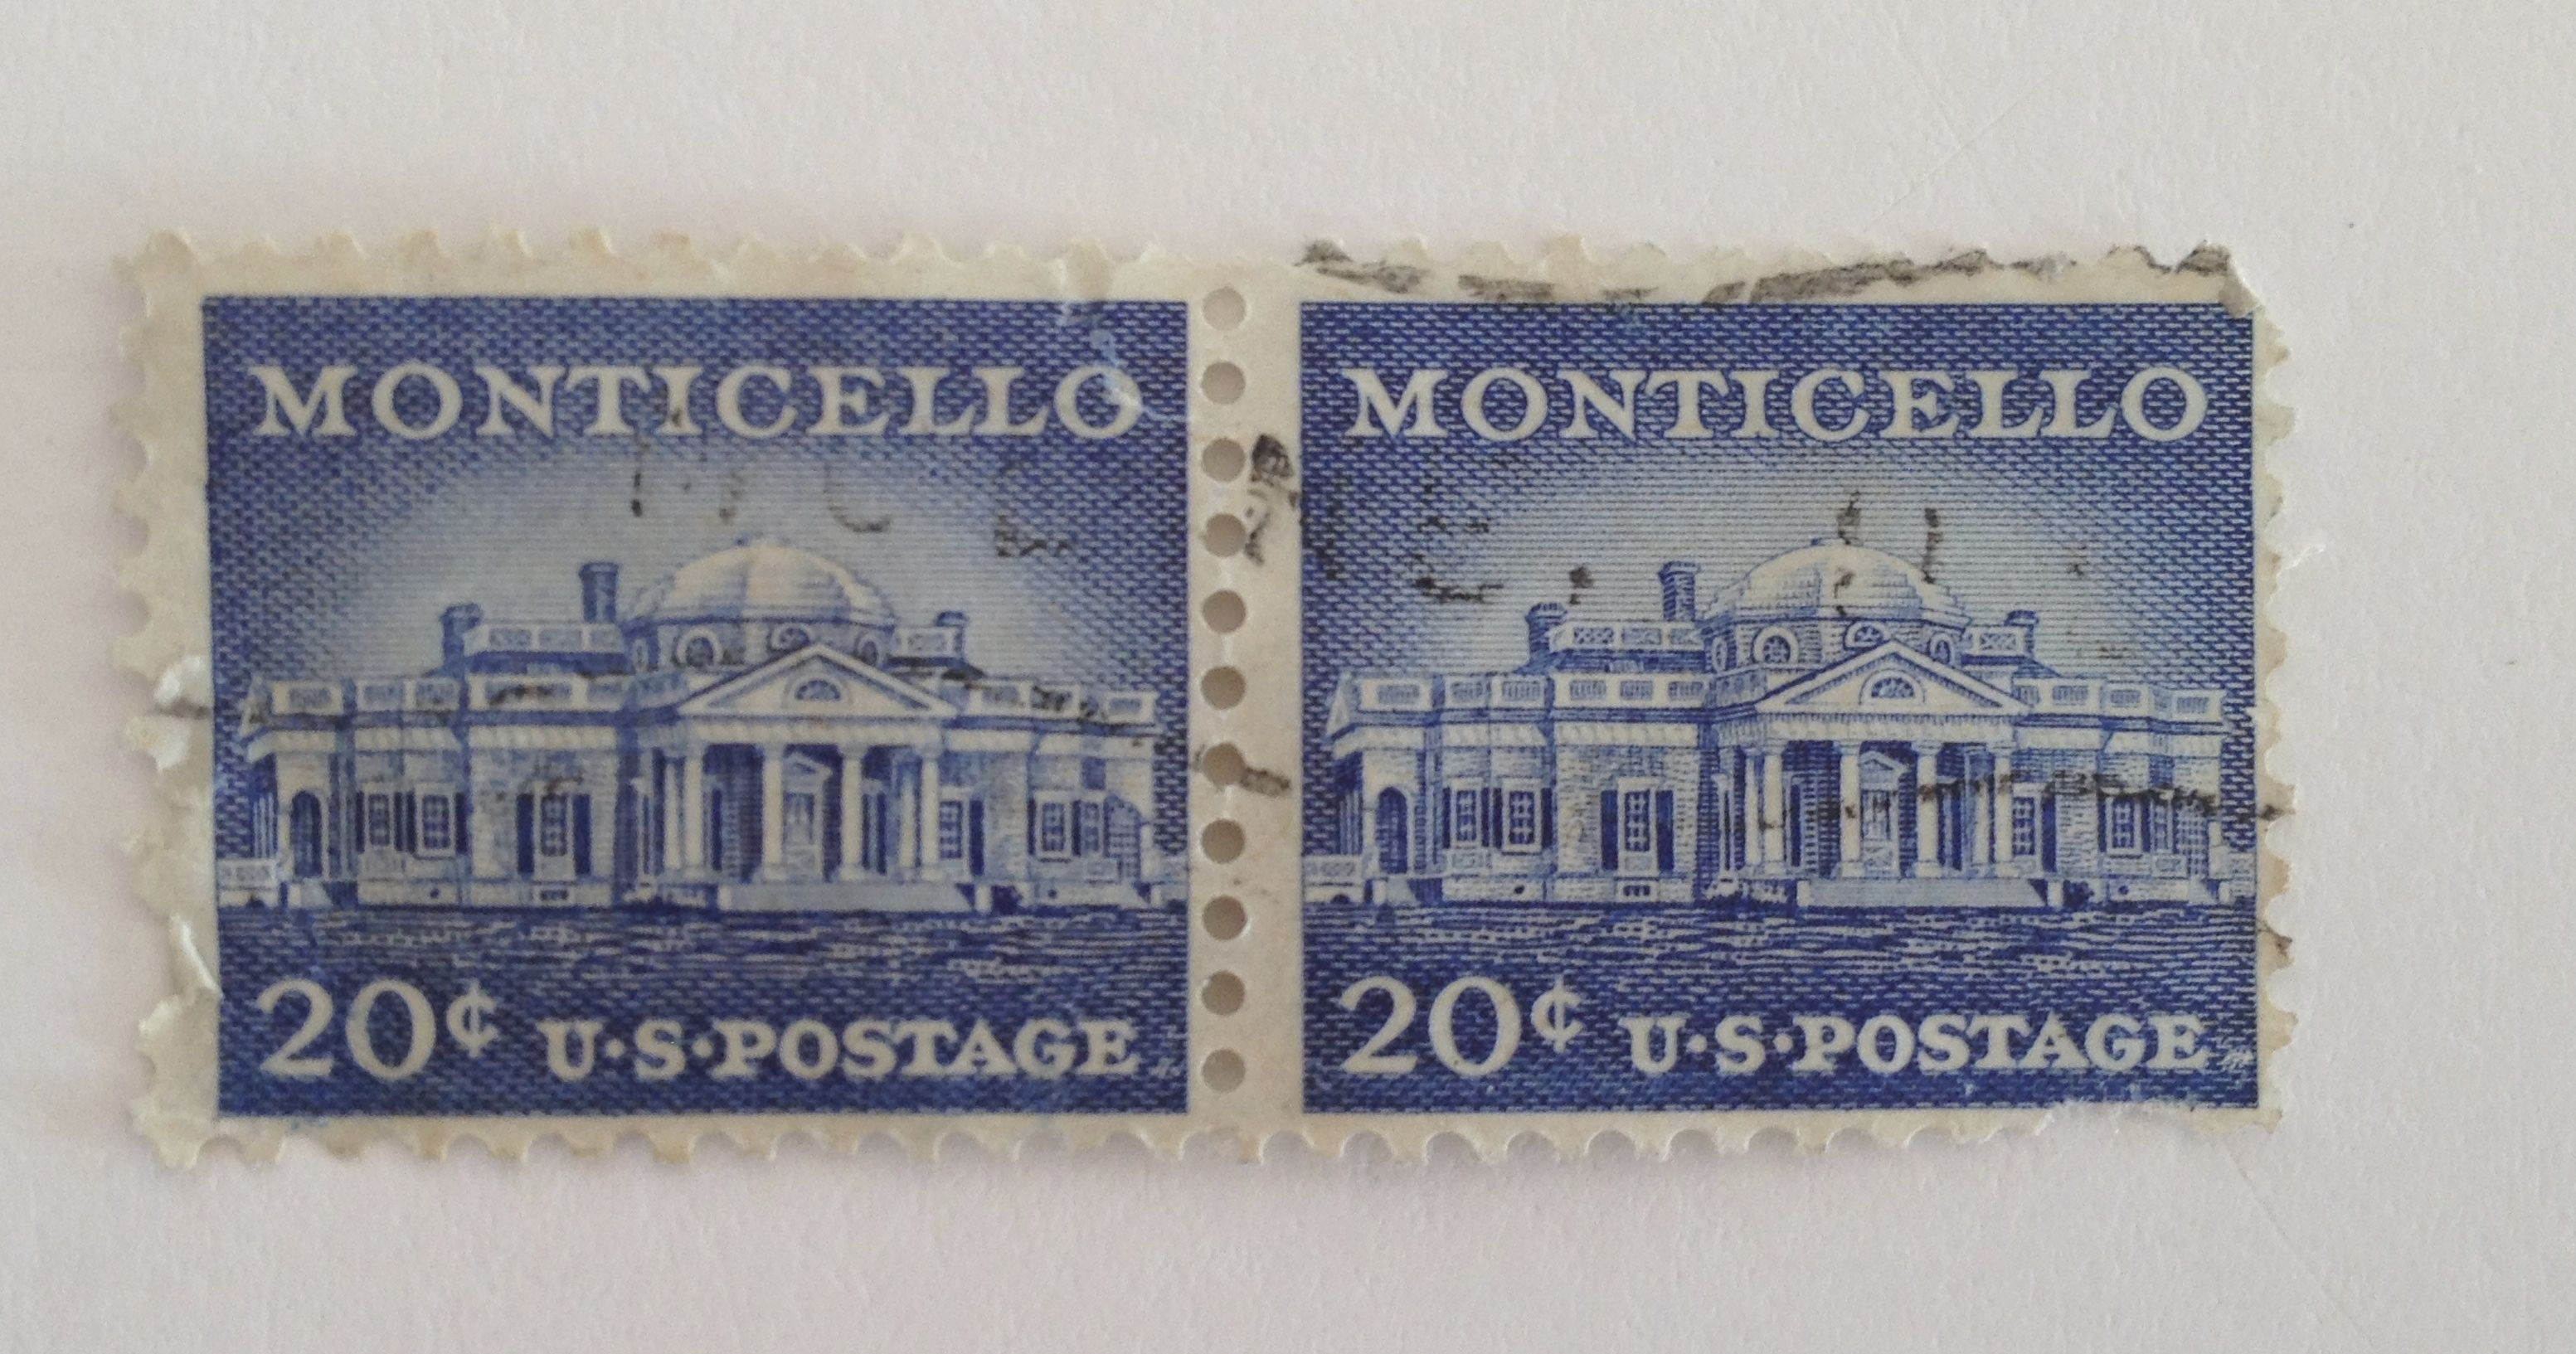 monticello cent us postage stamp stamp collection monticello 20 cent us postage stamp 2